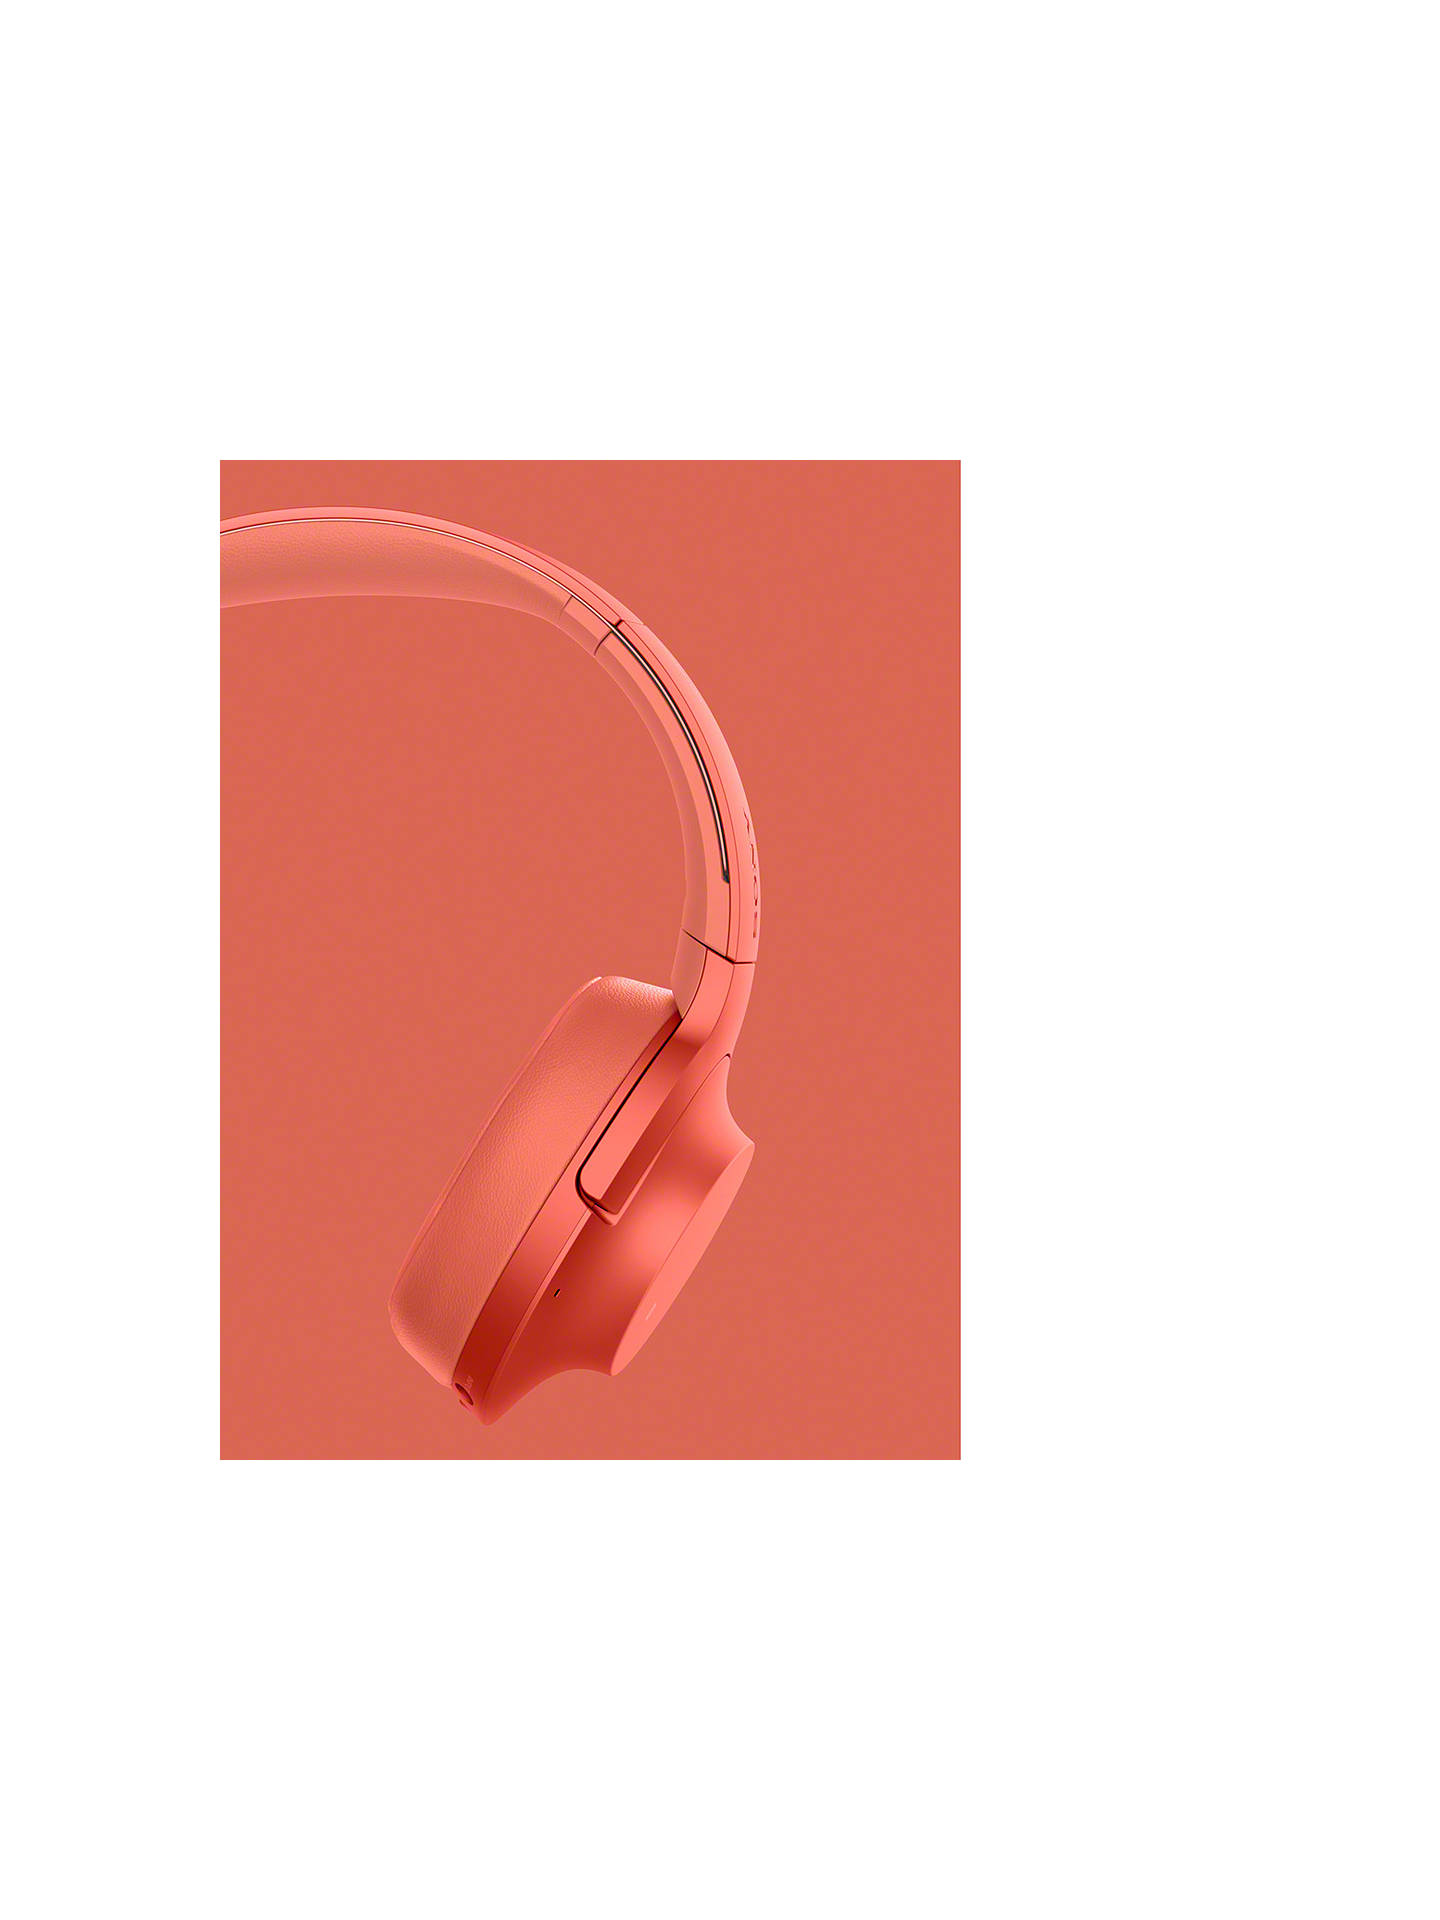 Buy Sony WH-H900N h.ear on 2 Wireless Bluetooth NFC Over-Ear Headphones with Noise Cancellation, Red Online at johnlewis.com